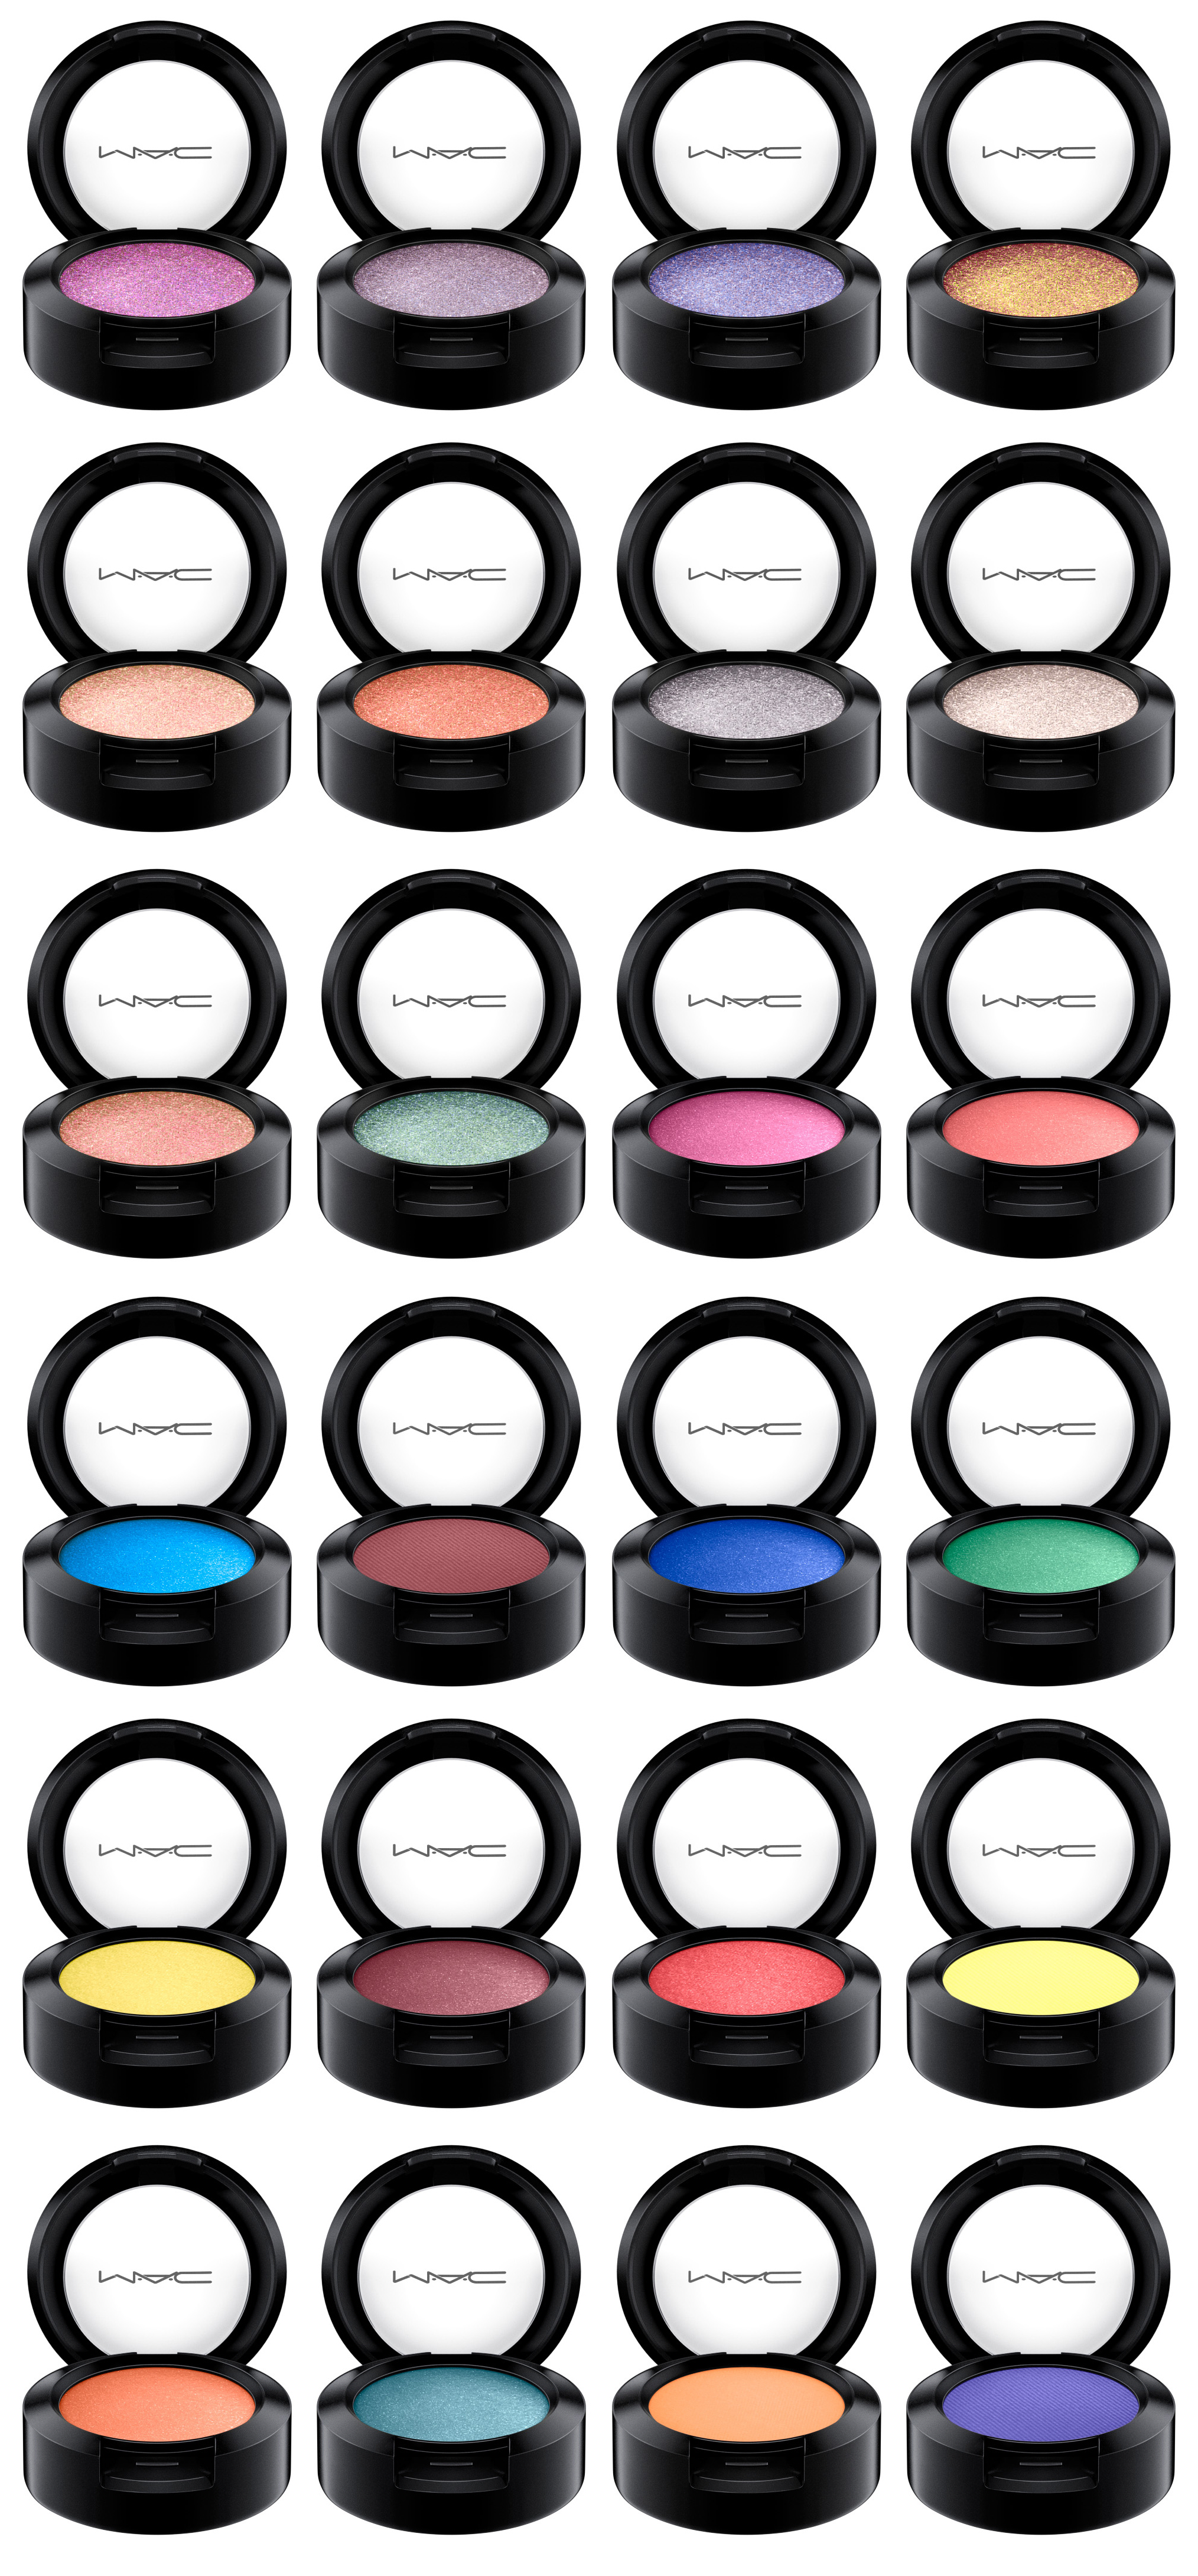 MAC Bangin' Brilliant Collection - New Permanent Eyeshadows, Blushes, Lipsticks for June 2016